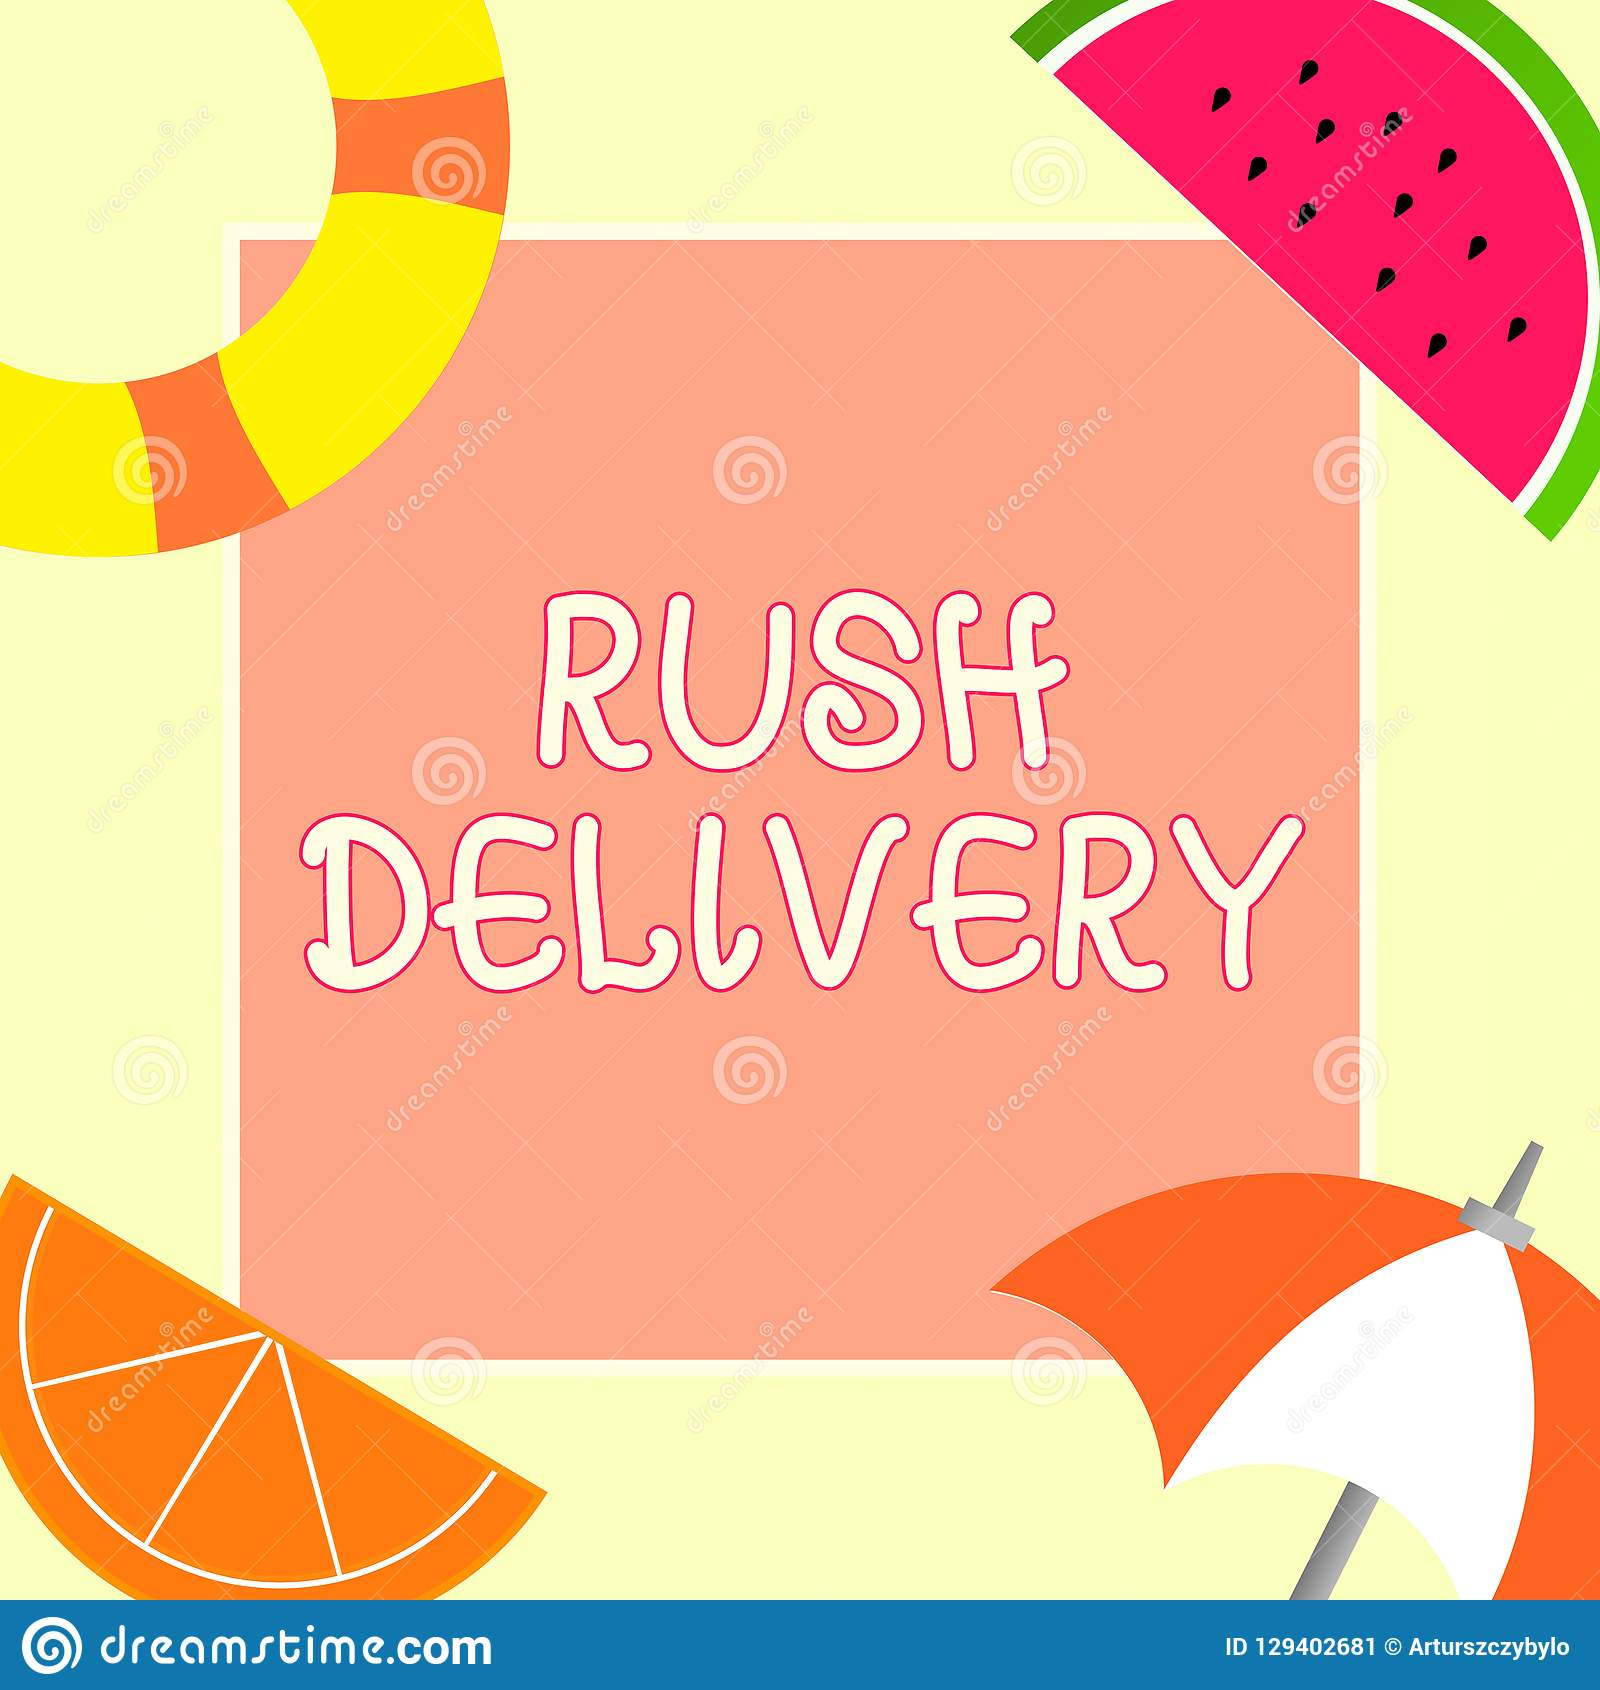 Handwriting Text Rush Delivery  Concept Meaning Urgency In